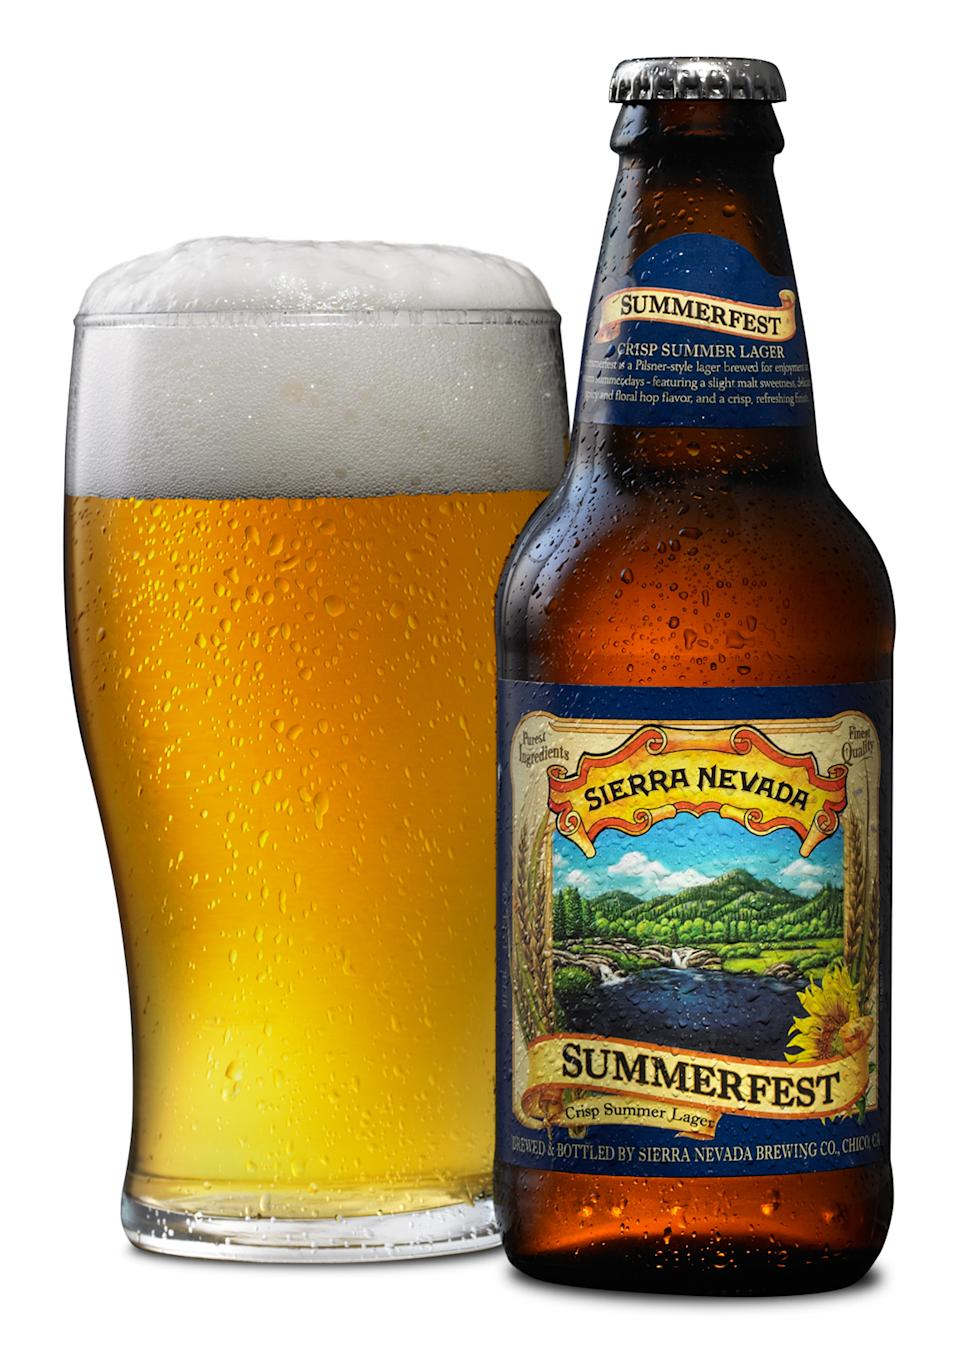 This undated photo provided by Sierra Nevada Brewing Co. shows a bottle and glass of Summerfest crisp summer lager. (AP Photo/Sierra Nevada Brewing Co.)